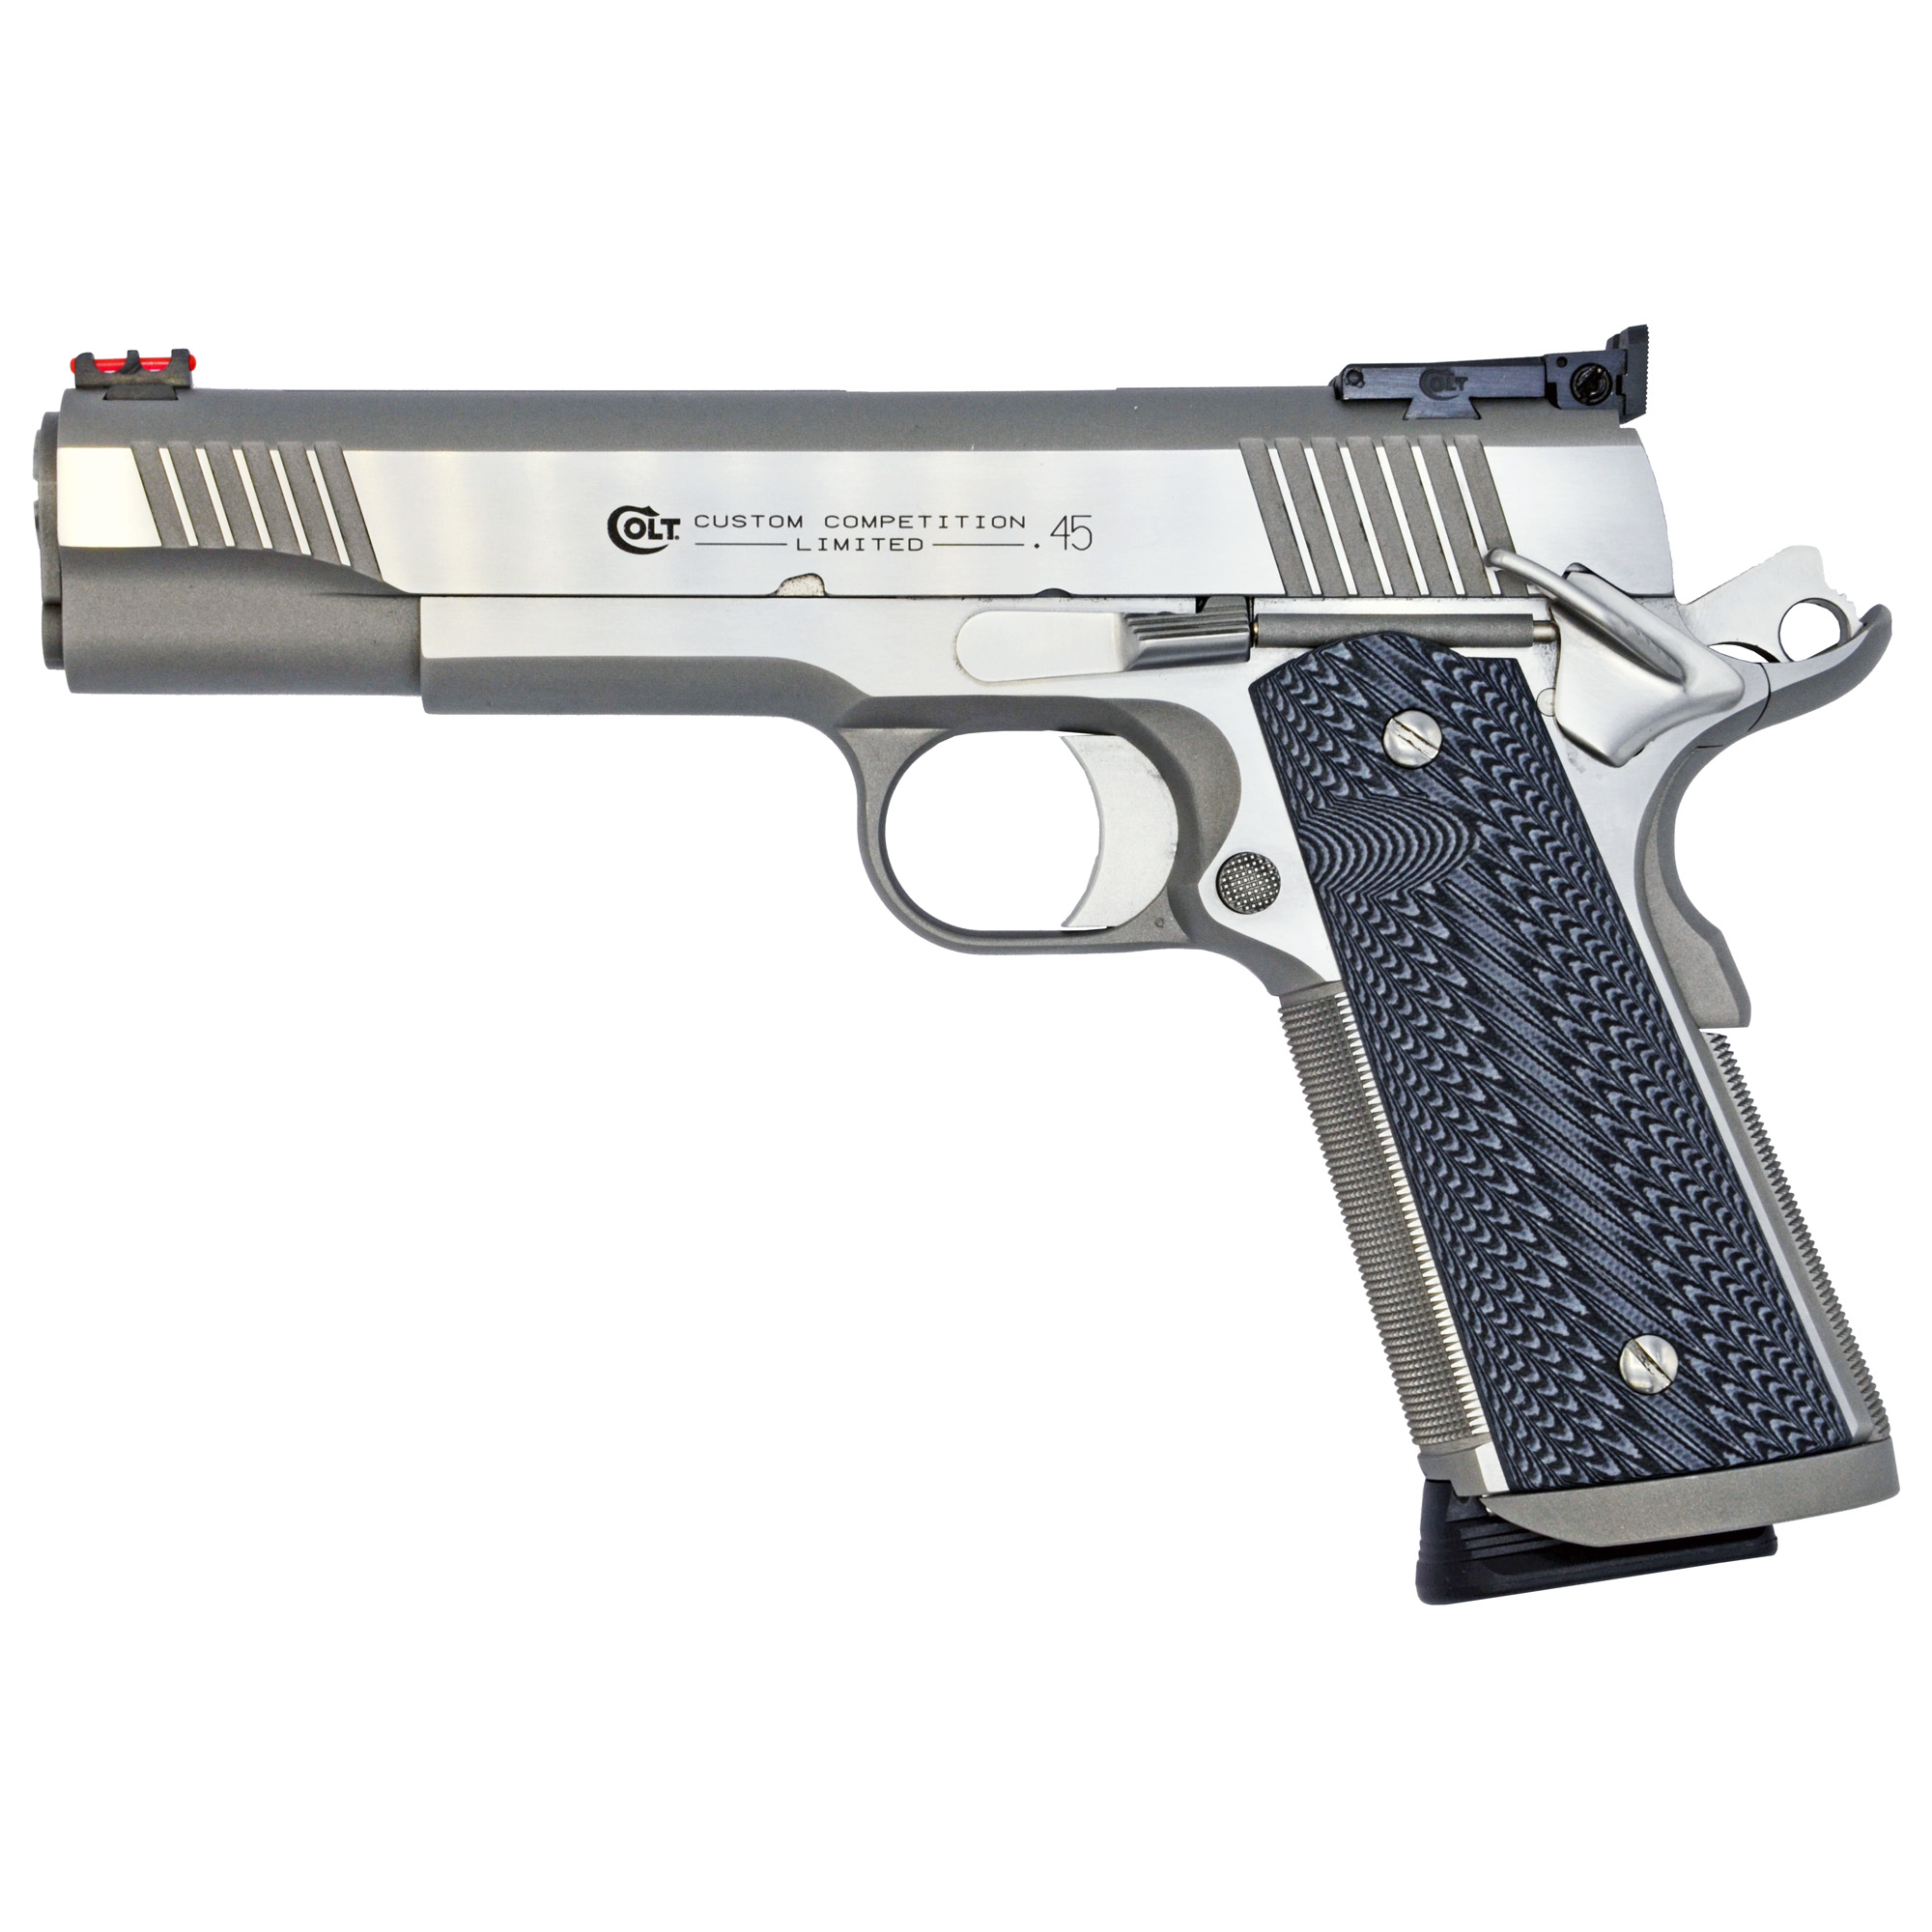 "The Custom Competition is a hand fit Series 70 Competition Pistol assembled by the Master Gunsmiths in the Colt Custom Shop. Features include a fully blended Magwell"" and 25lpi Front Strap checkering. The National Match(R) Barrel and Fully Adjustable Bomar Style Rear Sight ensures the utmost accuracy."